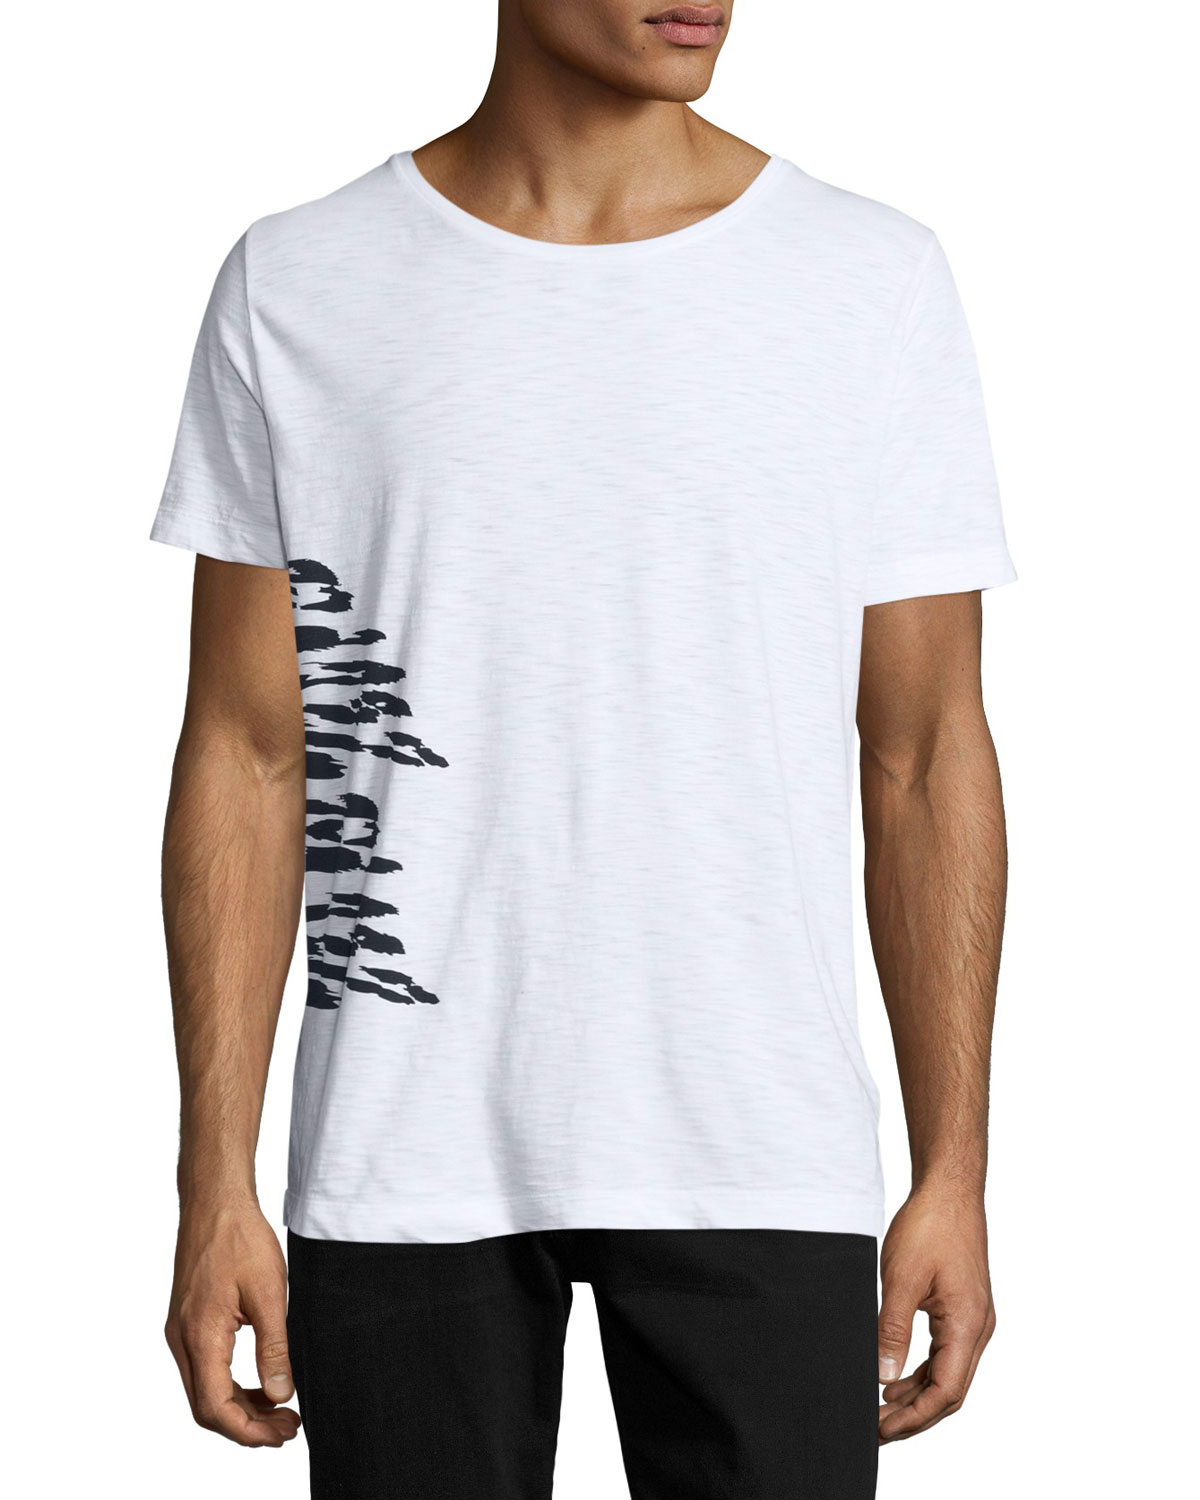 Animal-Print Slub T-Shirt, White